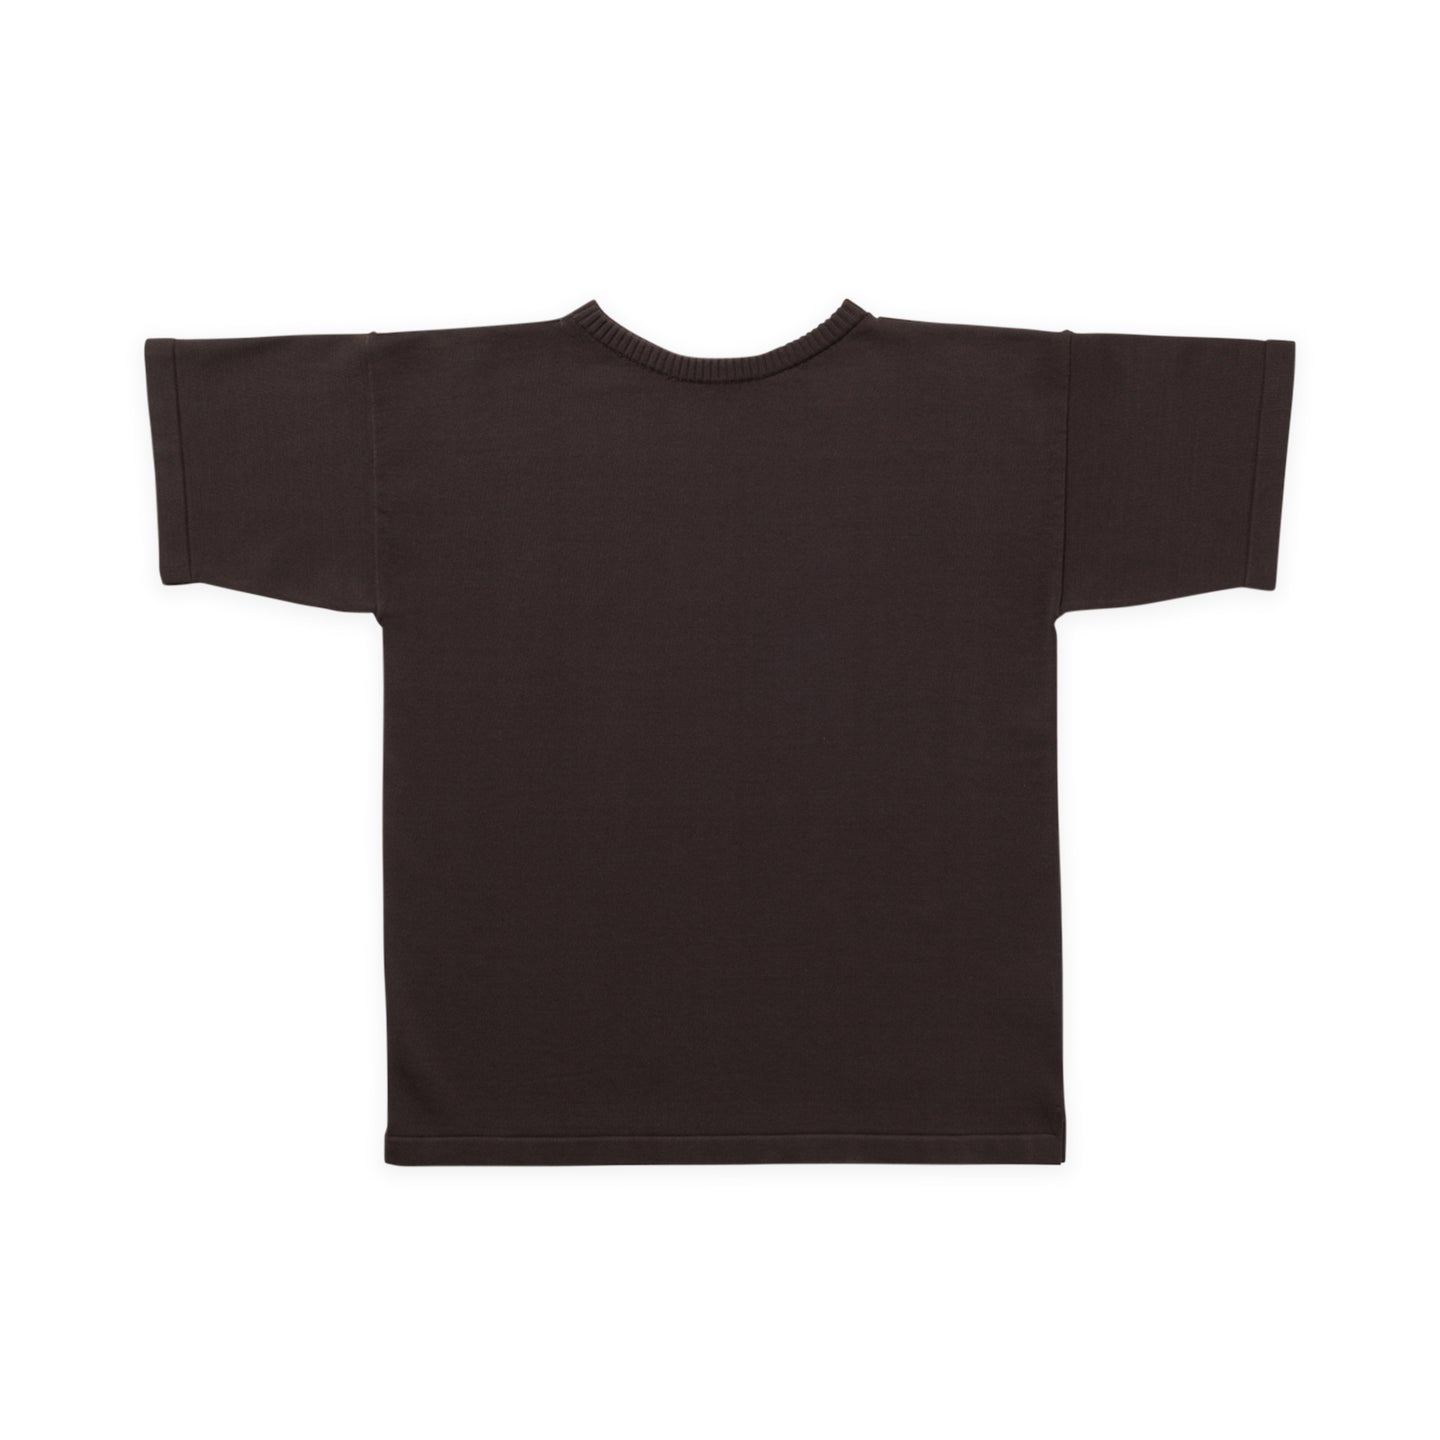 ANDERSEN-ANDERSEN T Shirt - Dark Brown